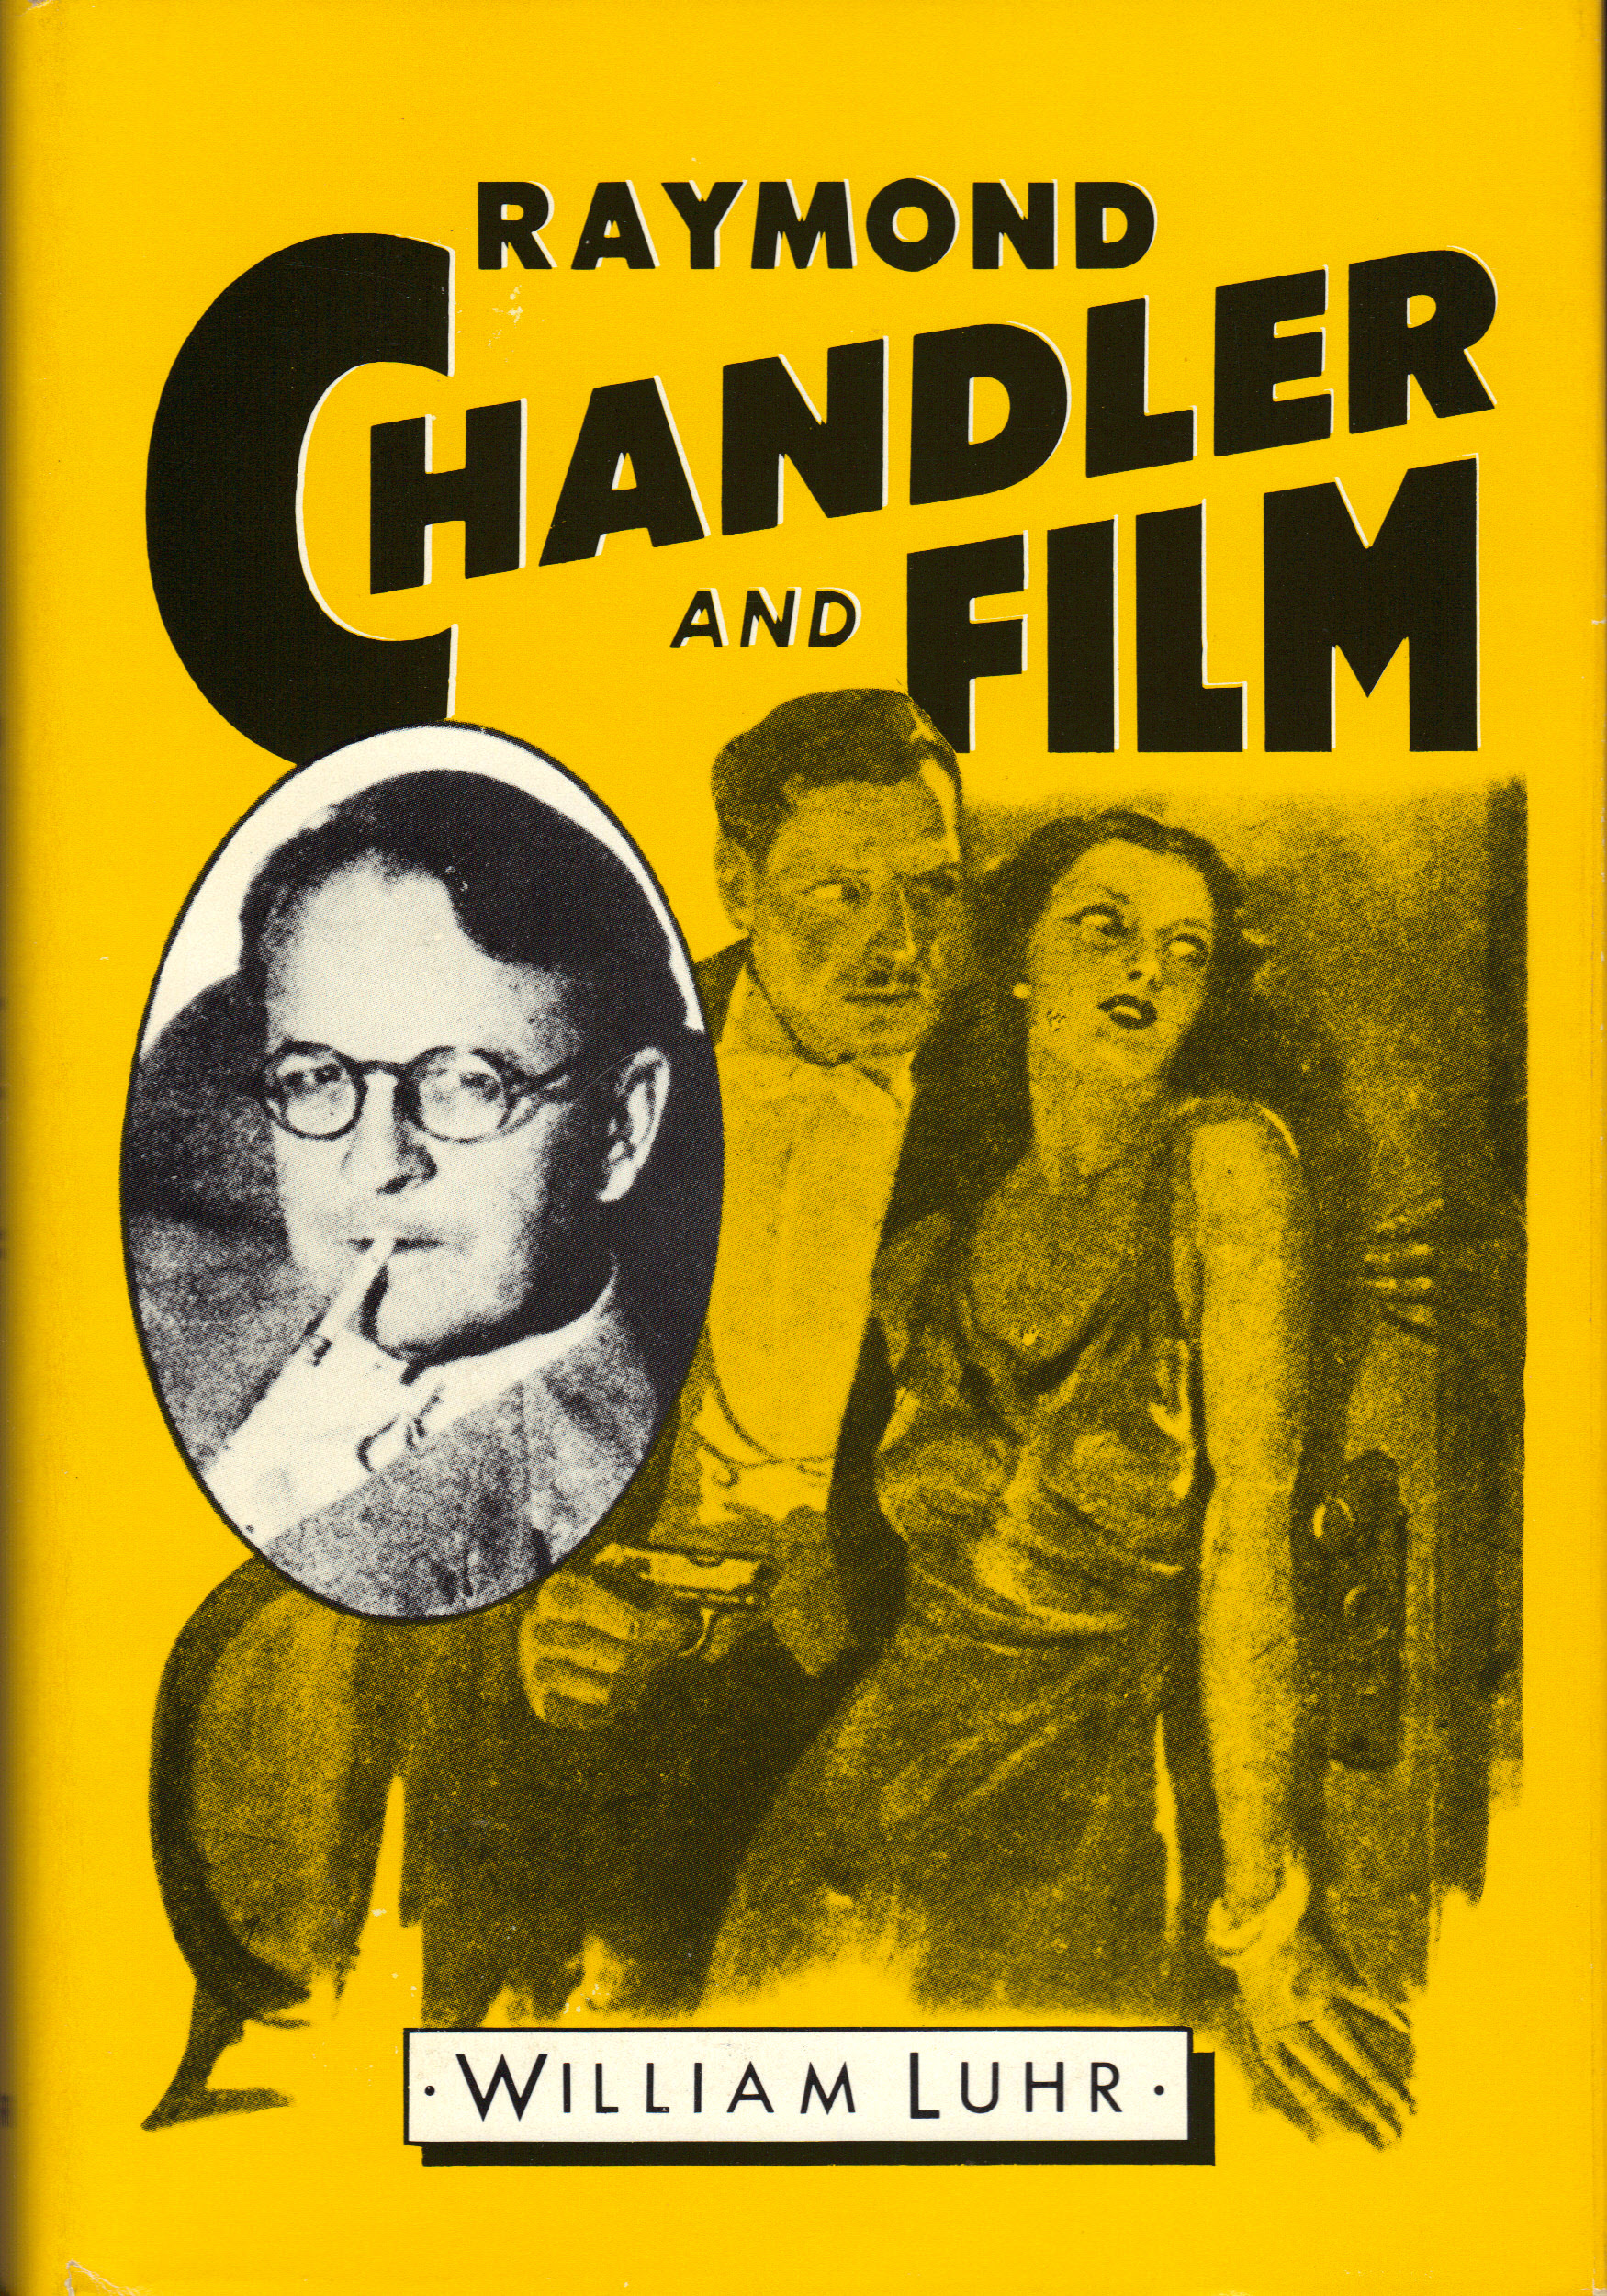 Image for RAYMOND CHANDLER AND FILM